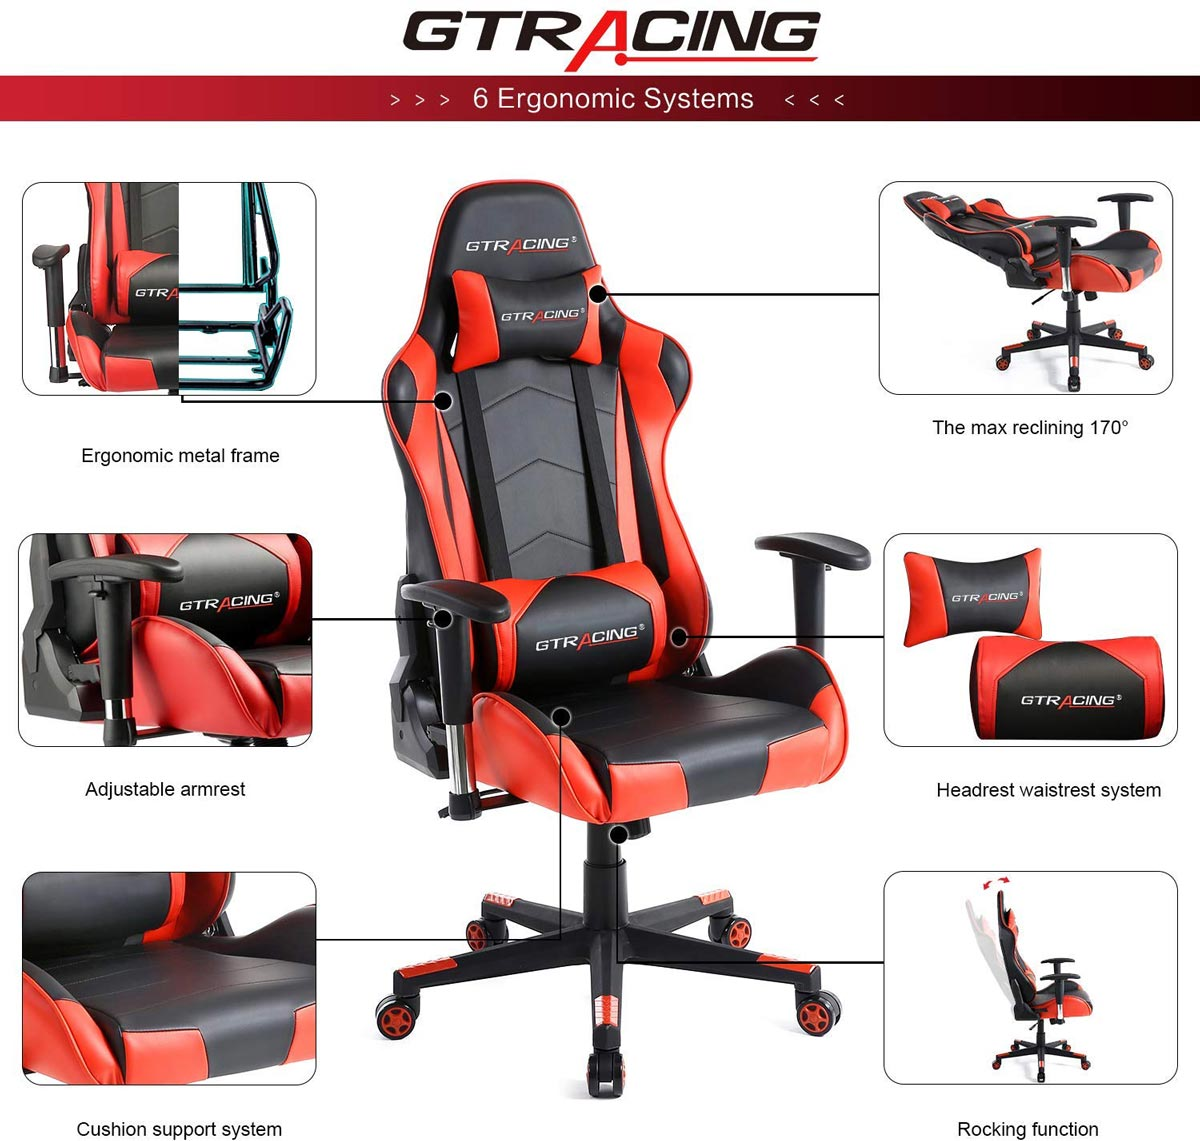 Some features of GTRacing gaming chairs